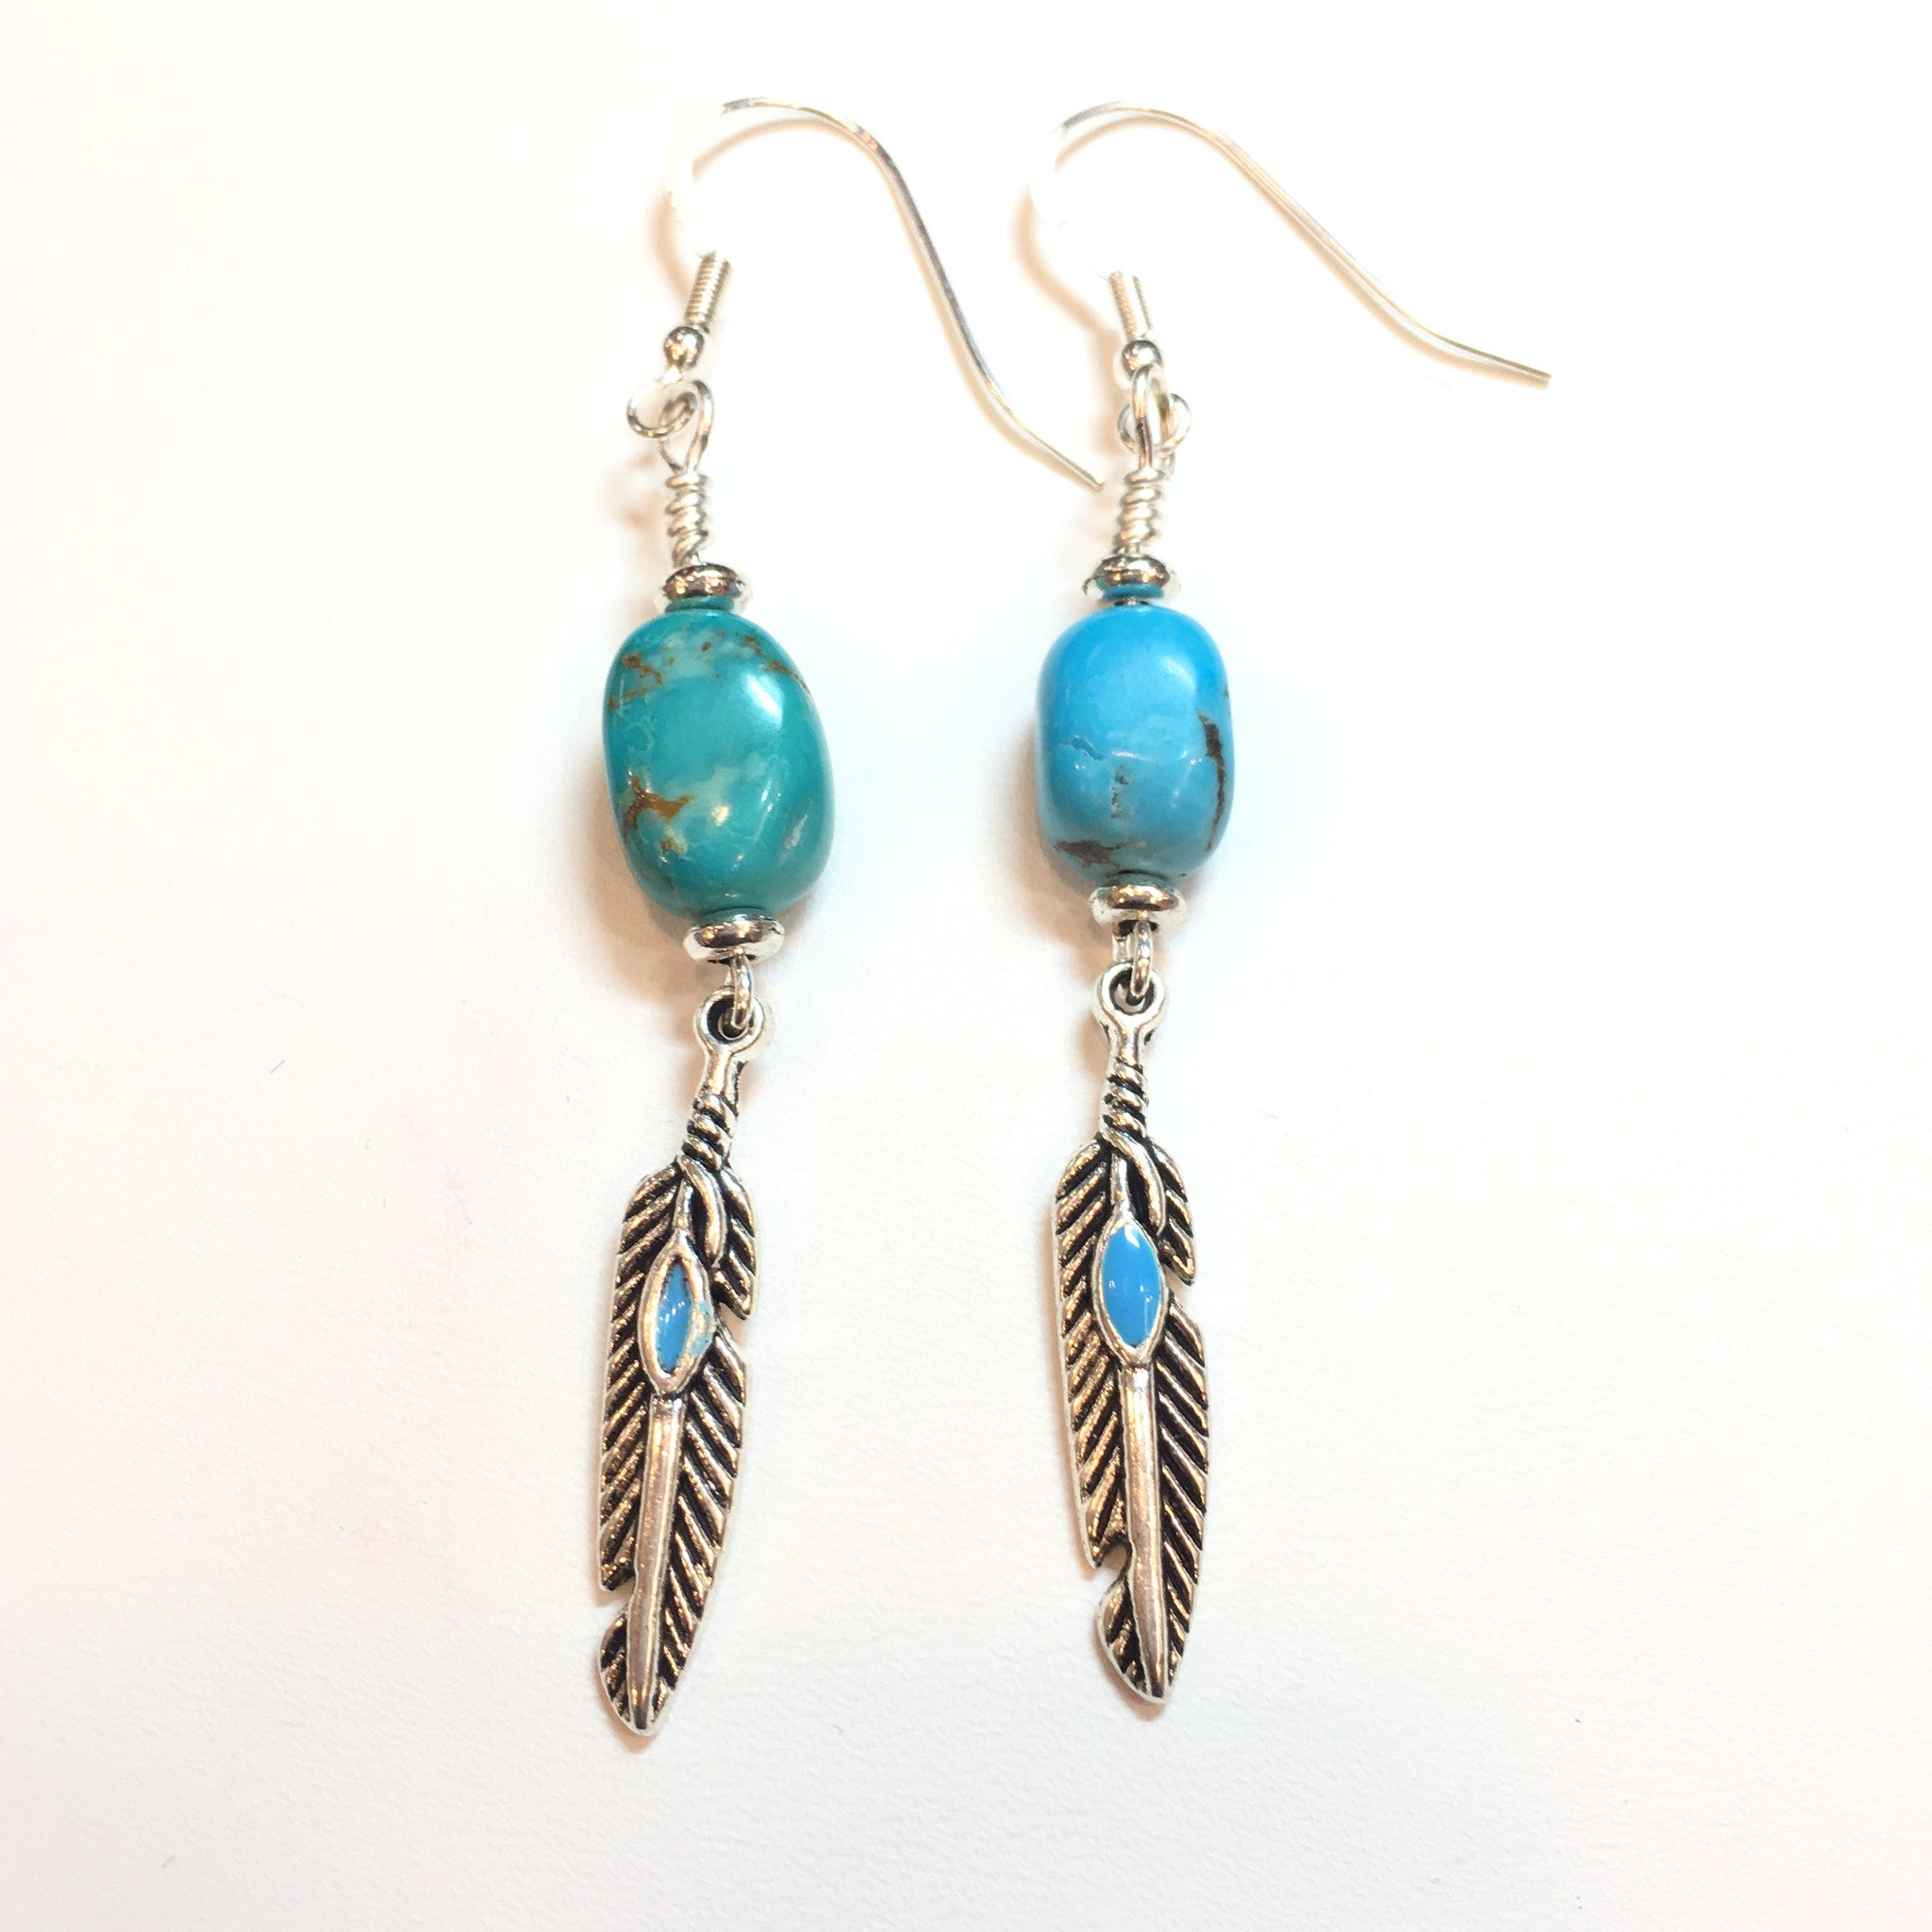 Turquoise and Silver Drop Earring - Real Chic Boutique  - 2